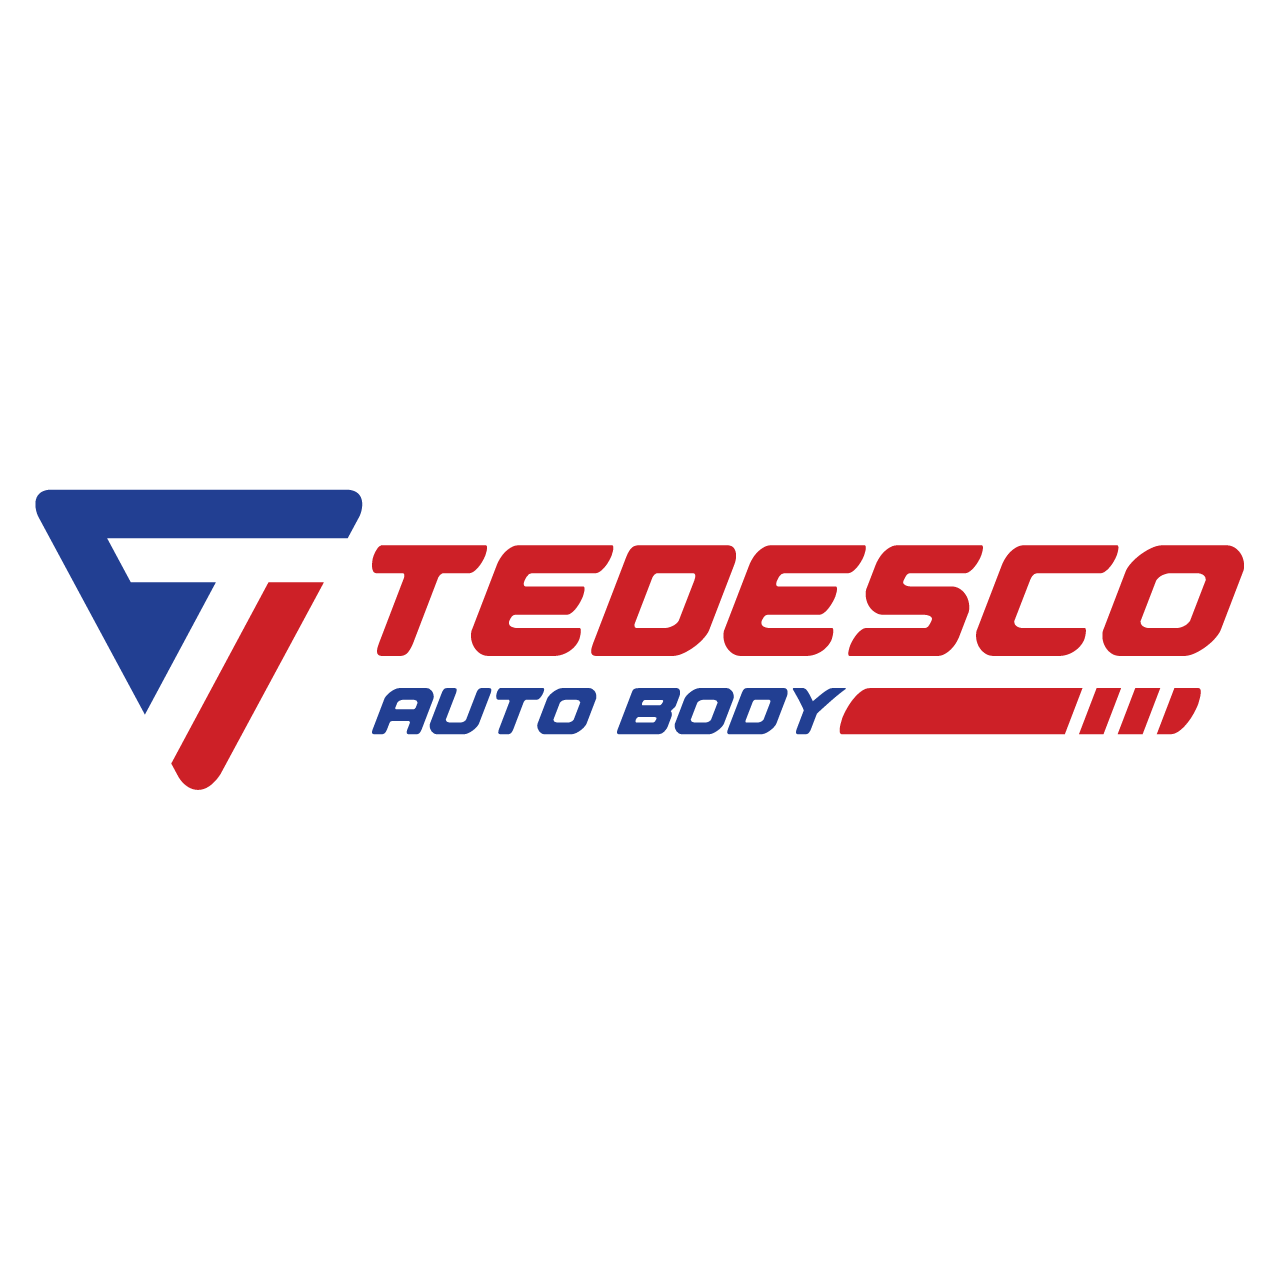 Tedesco Auto Body